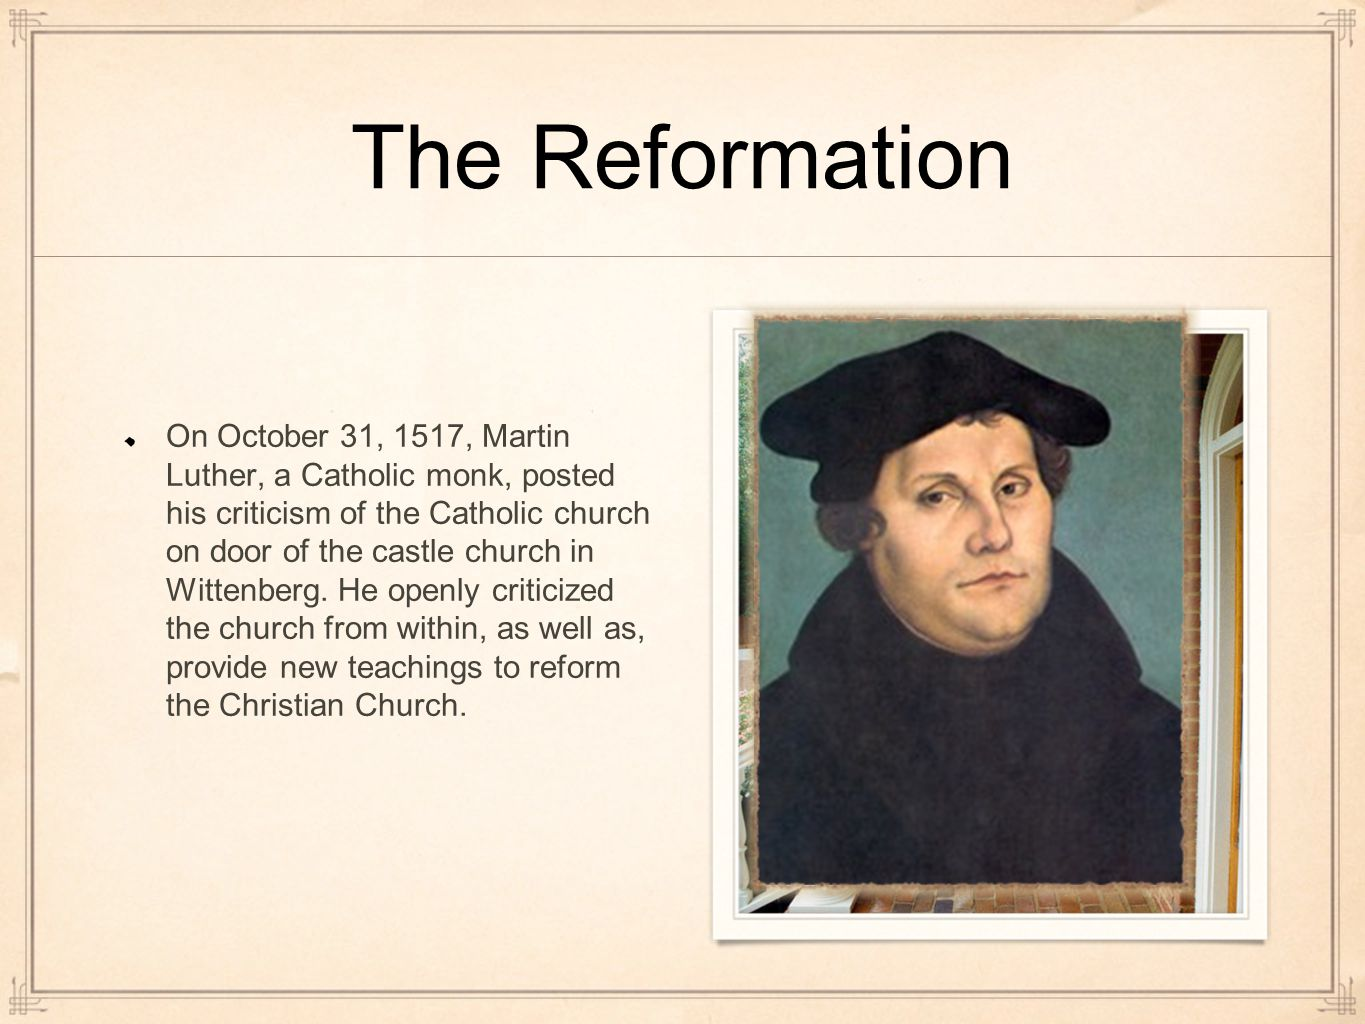 impact of the reformation Editor's note: this year marks the 500th anniversary of the reformation, and this is one in a series of columns to describe the origins, nature and impact of the.